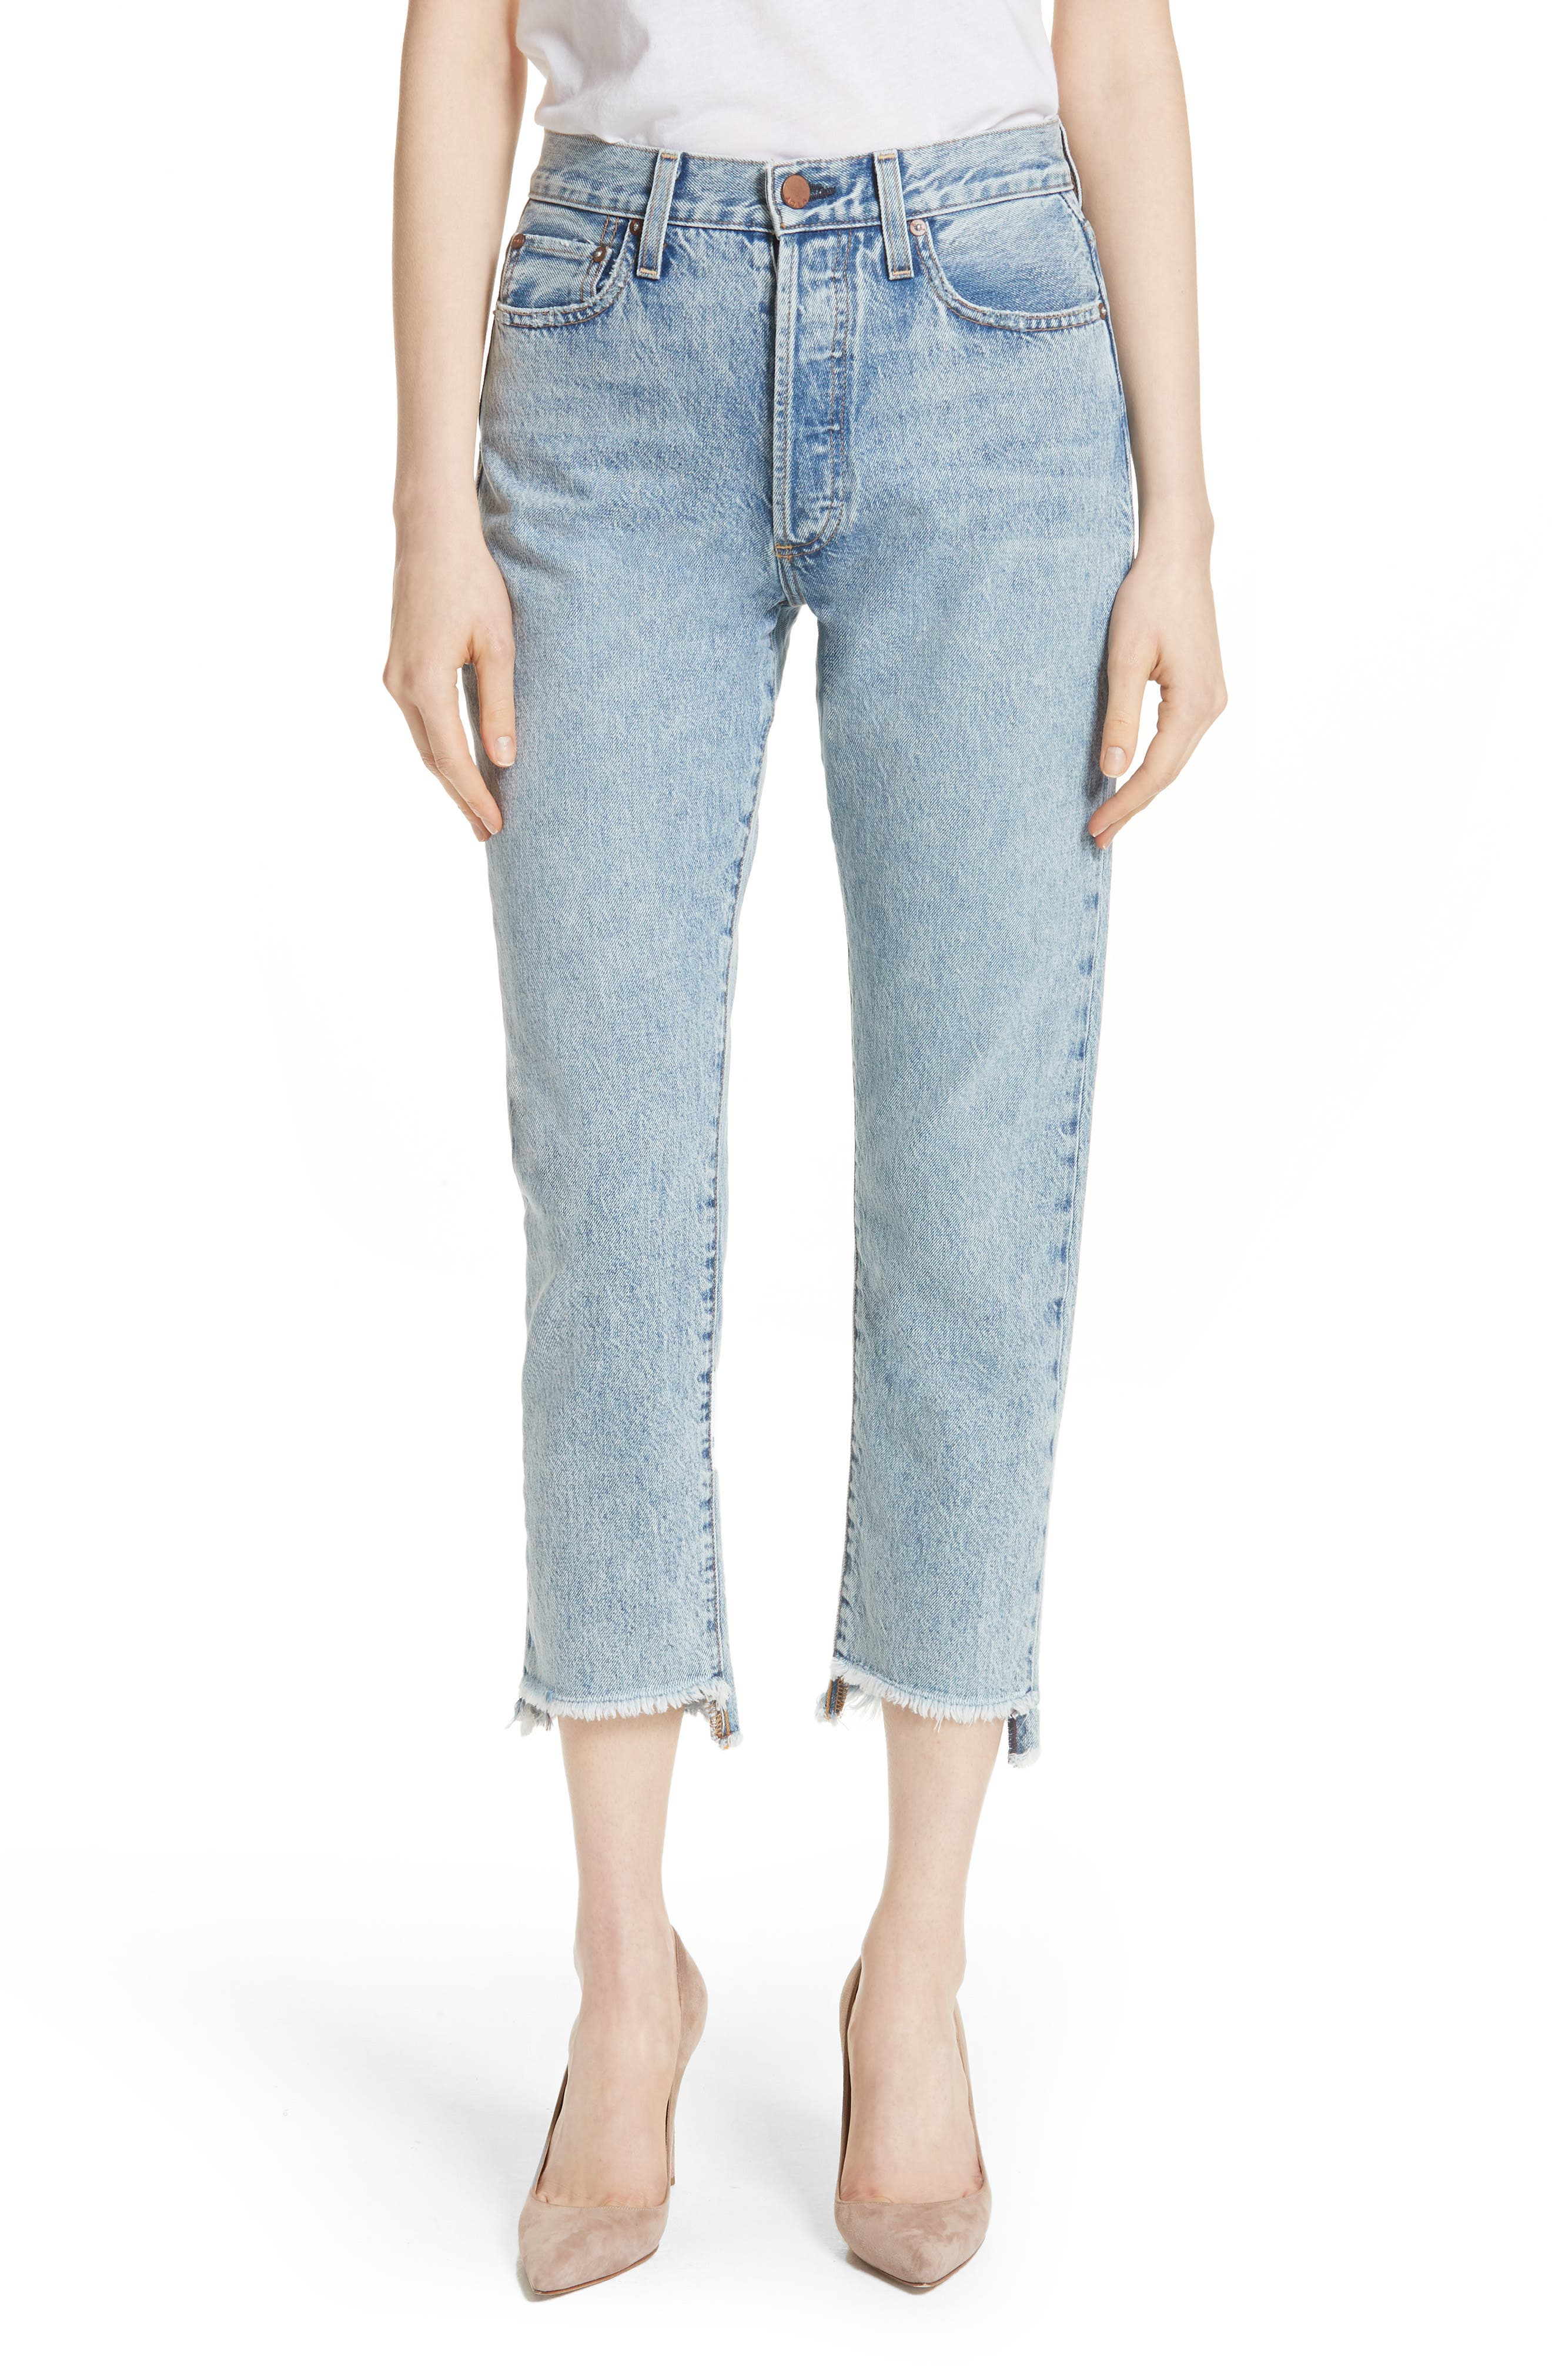 ALICE + OLIVIA JEANS Amazing Good Luck Slim Girlfriend Jeans, Main, color, 490